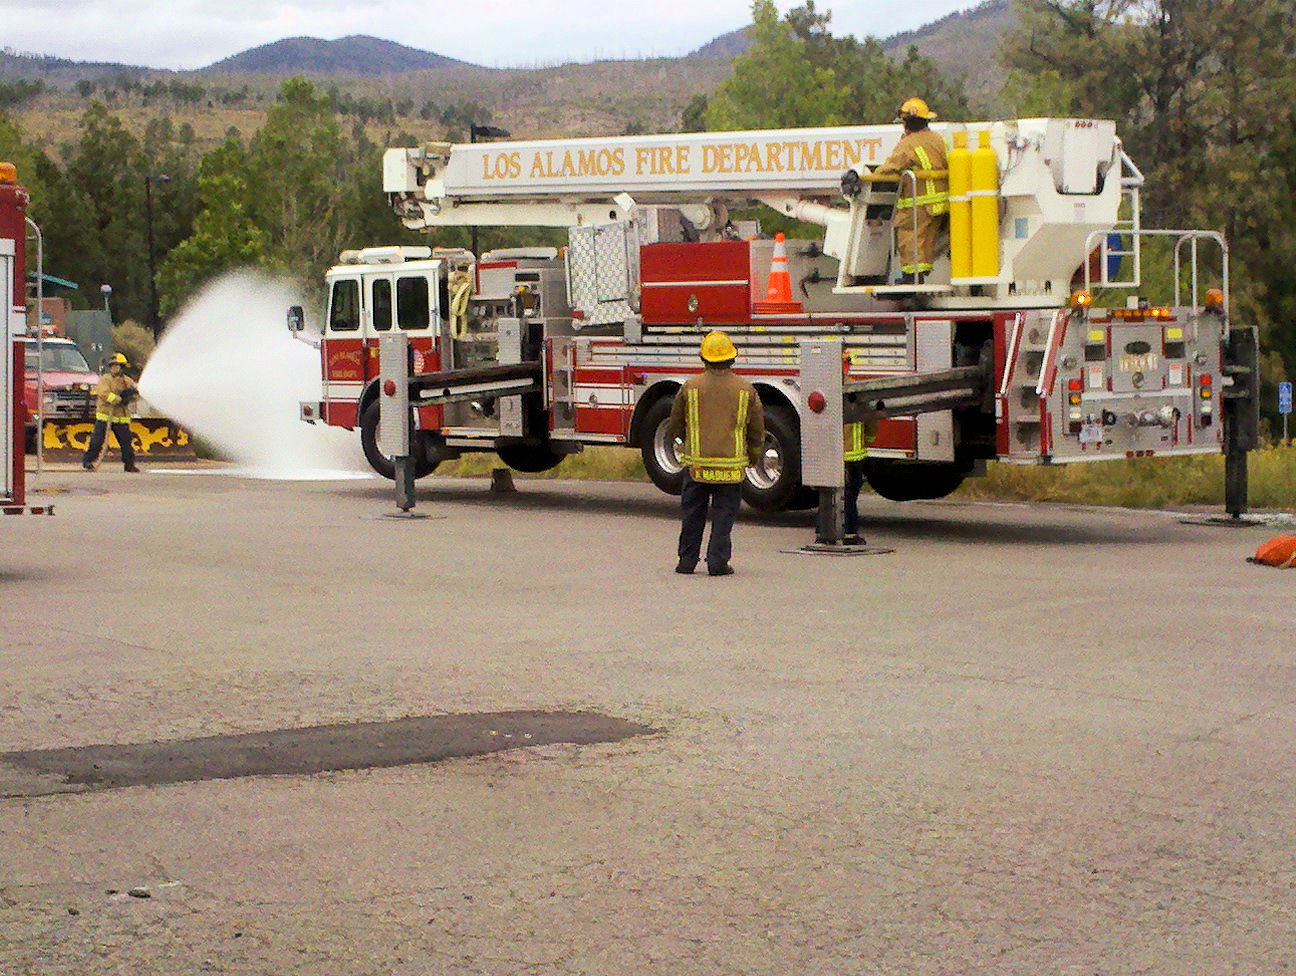 New mexico los alamos county los alamos - The Los Alamos County Fire Department Serves Both Los Alamos County As Well As Being The Fire Department For The Los Alamos National Laboratory And Is A